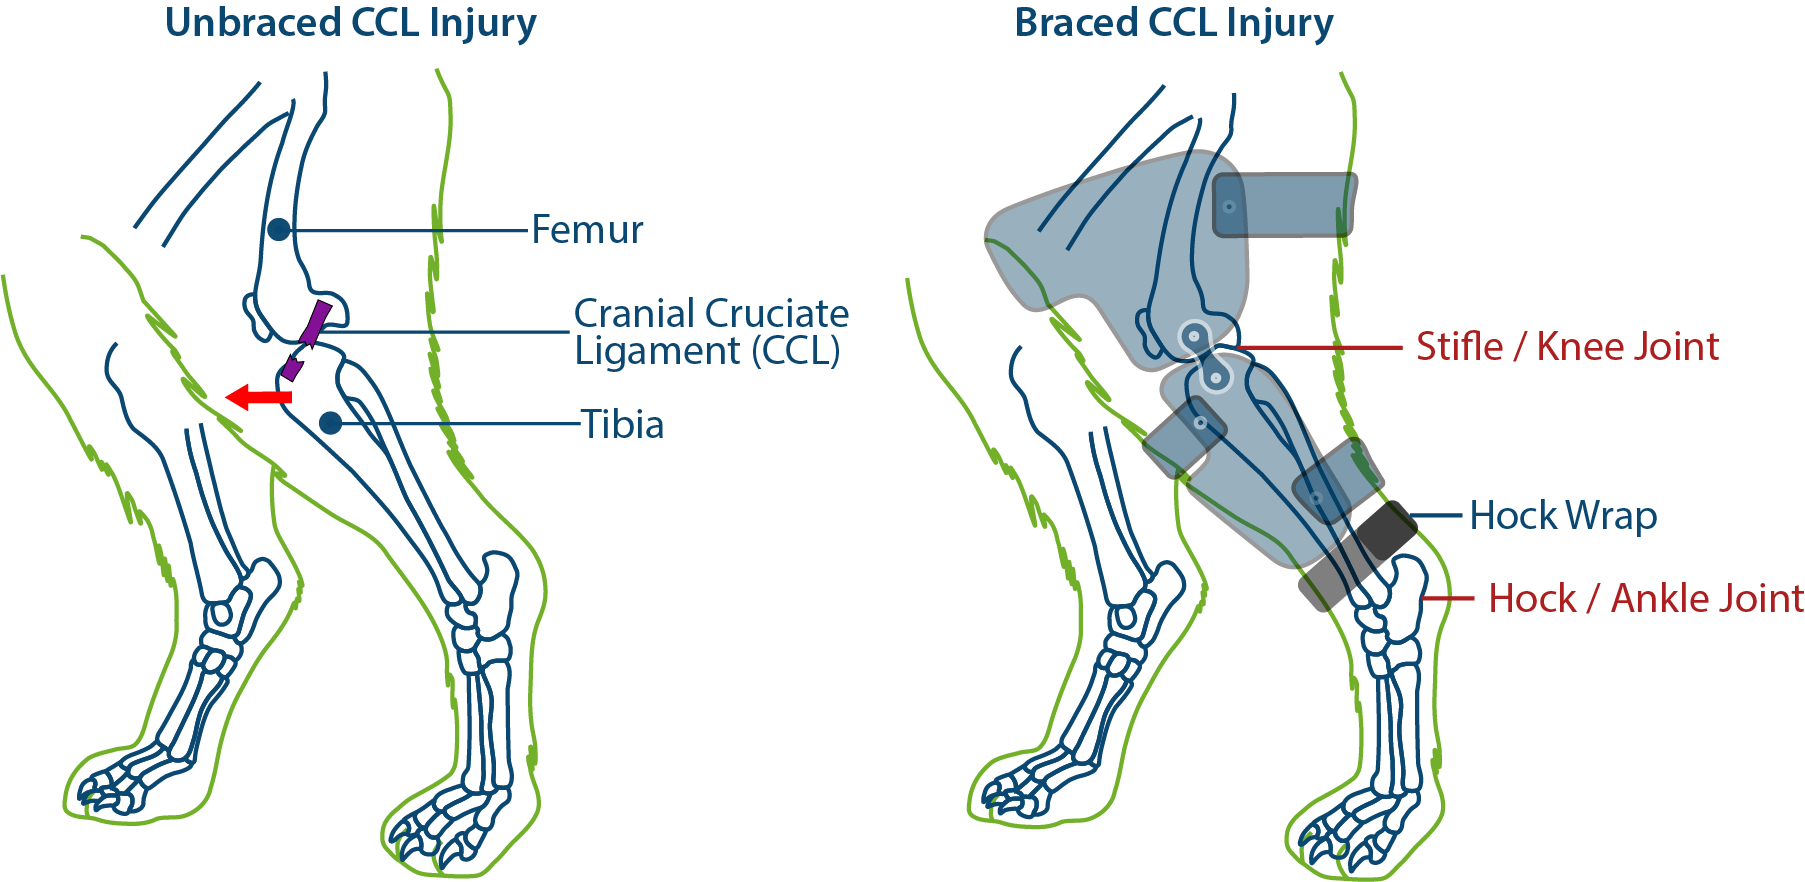 PawOpedic Custom Cranial Cruciate Ligament (CCL) Brace - How does it work?